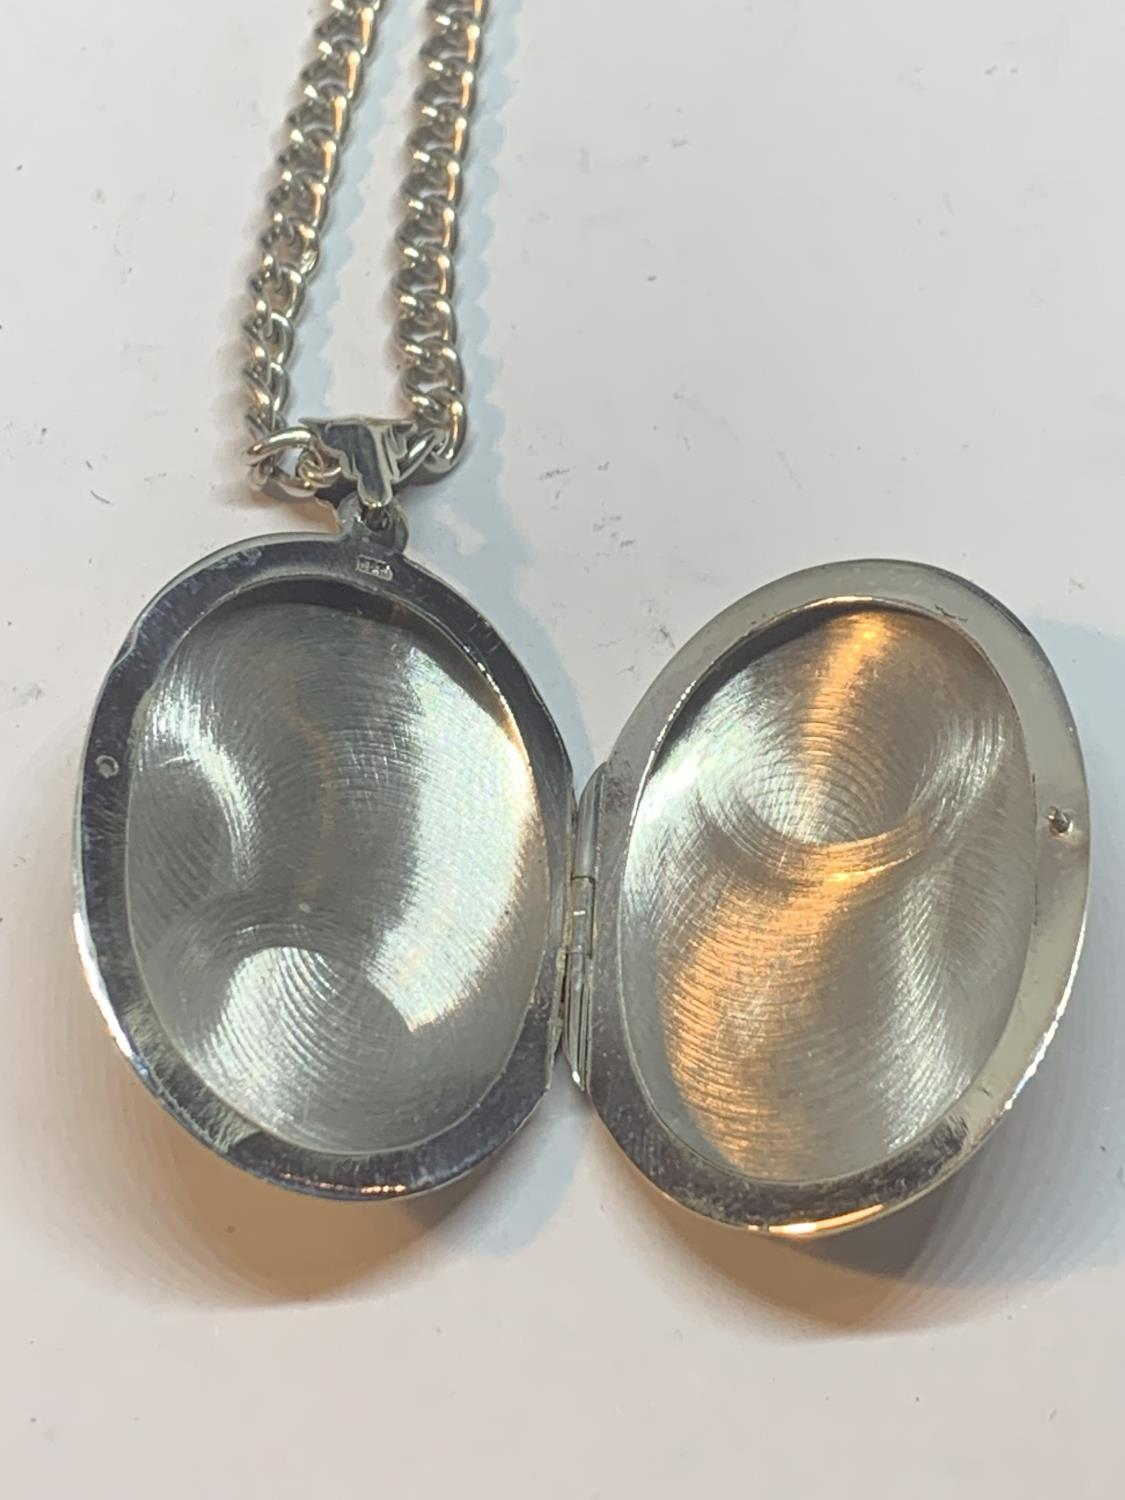 A SILVER NECKLACE WITH A LARGE OVAL LOCKET PENDANT - Image 4 of 4